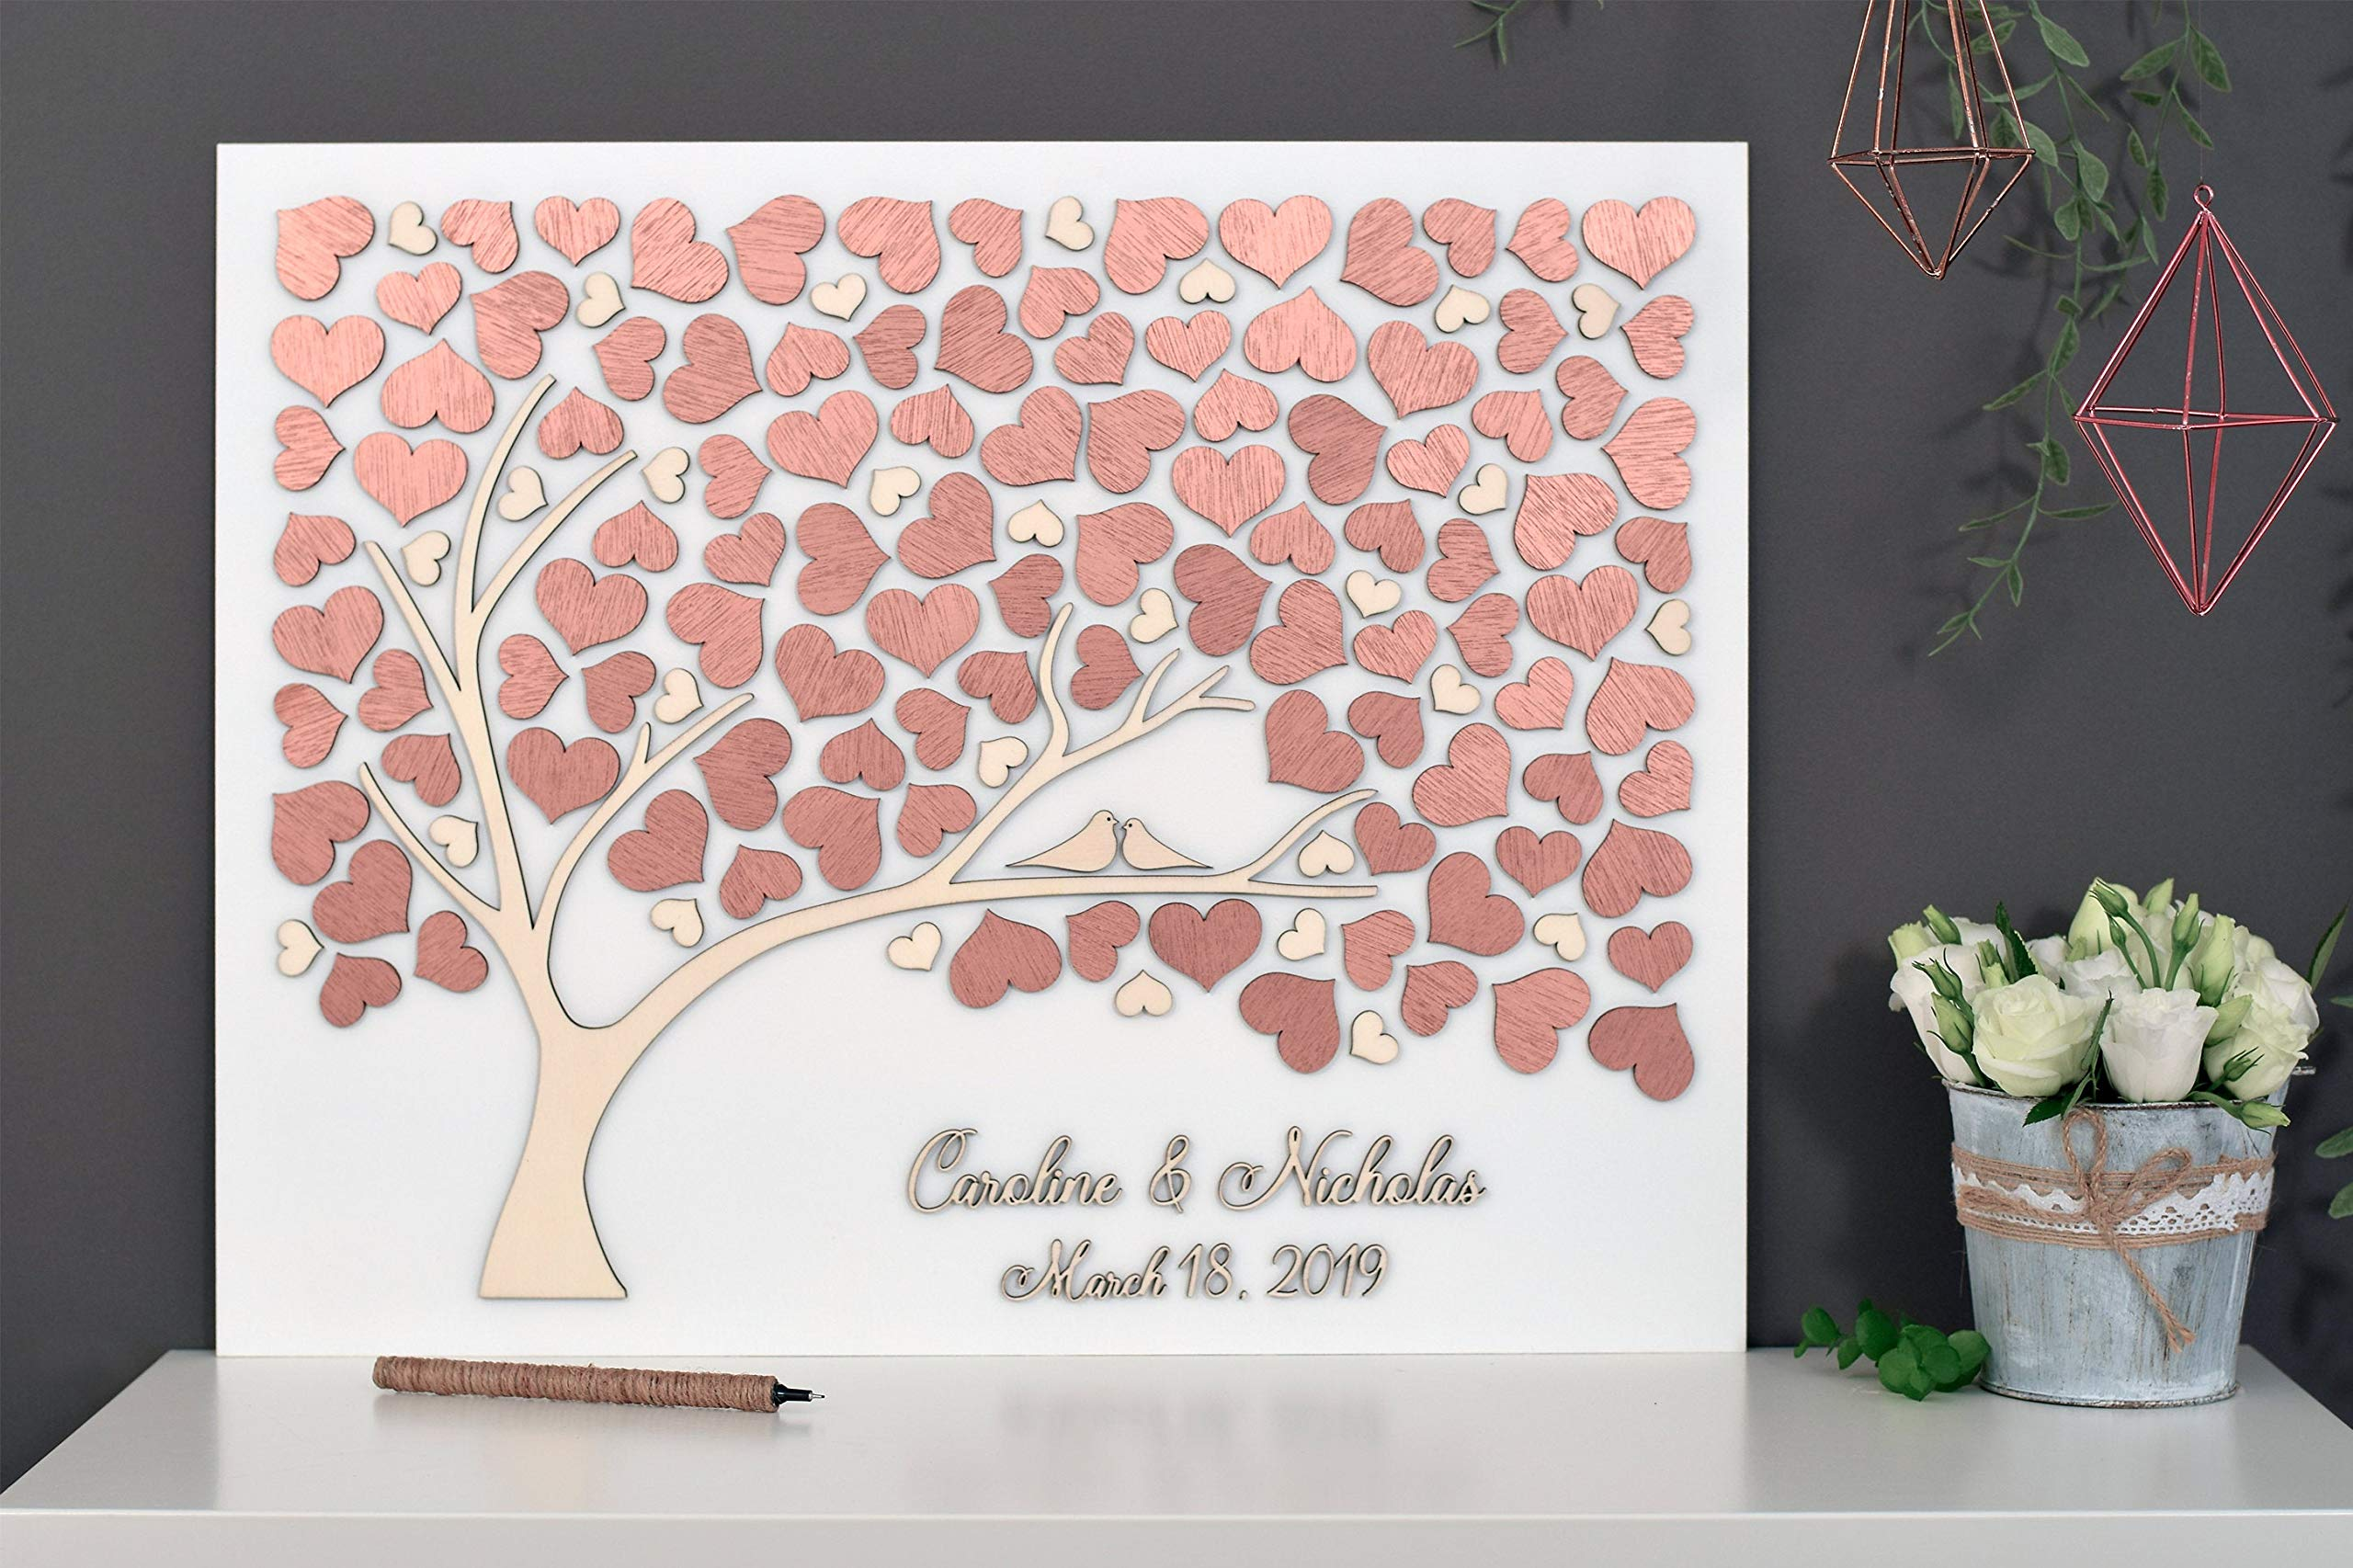 LOVE NILE Rose Gold Tree Wedding Guest Book Alternative Tree Wood Custom Unique Guest Book Hearts Leaves Rustic Wedding Rustic Wooden Tree of Life Personalized Wedding Decor